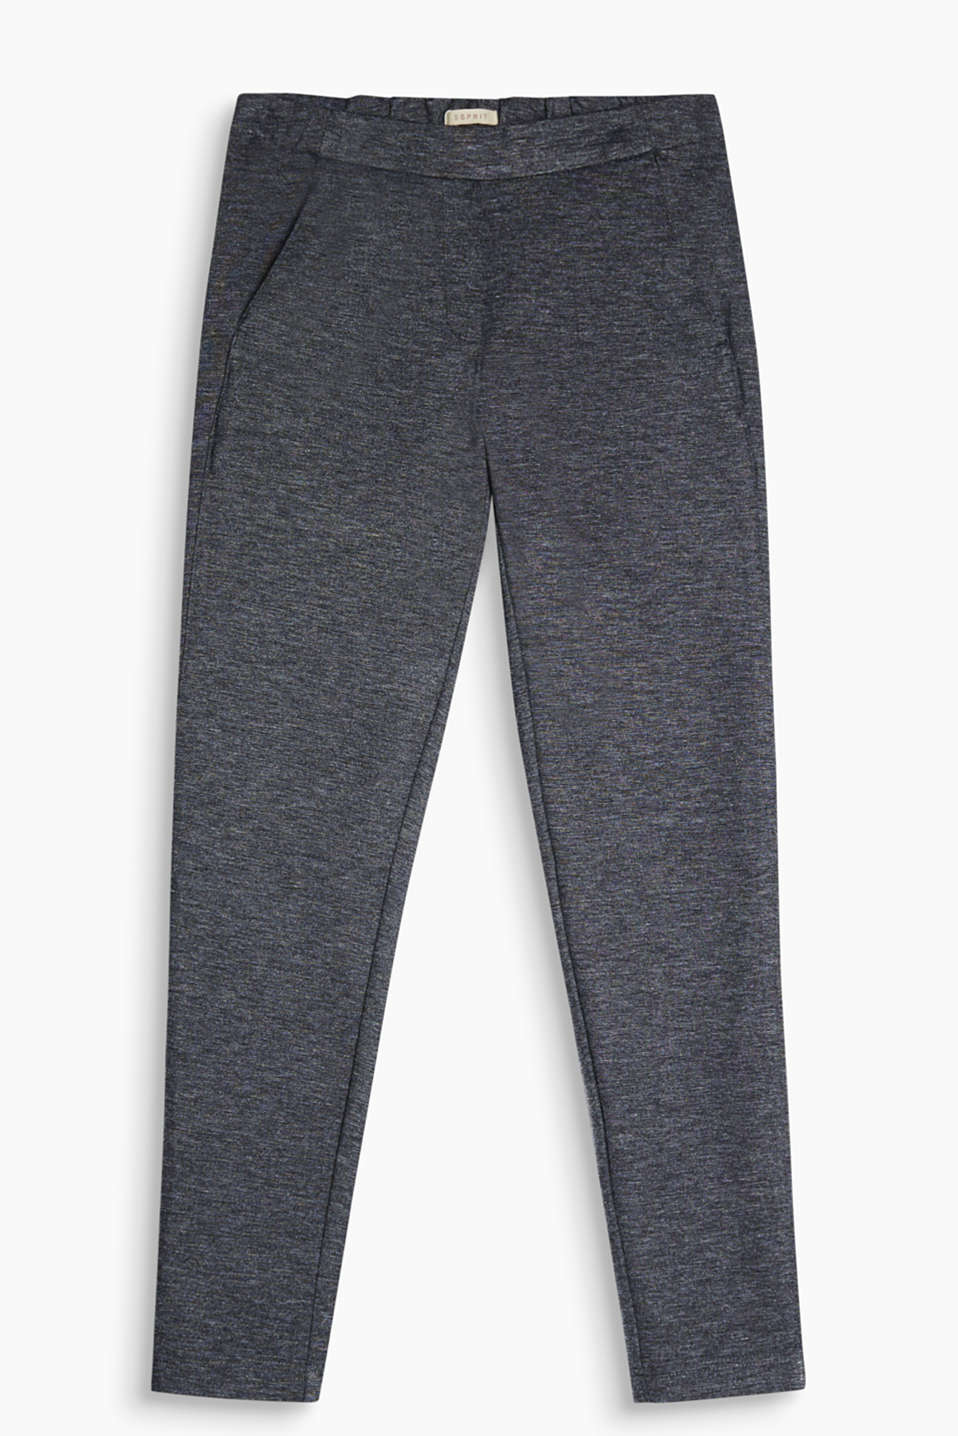 These melange bottoms in a trendy tracksuit style are super comfortable while also creating a smart look